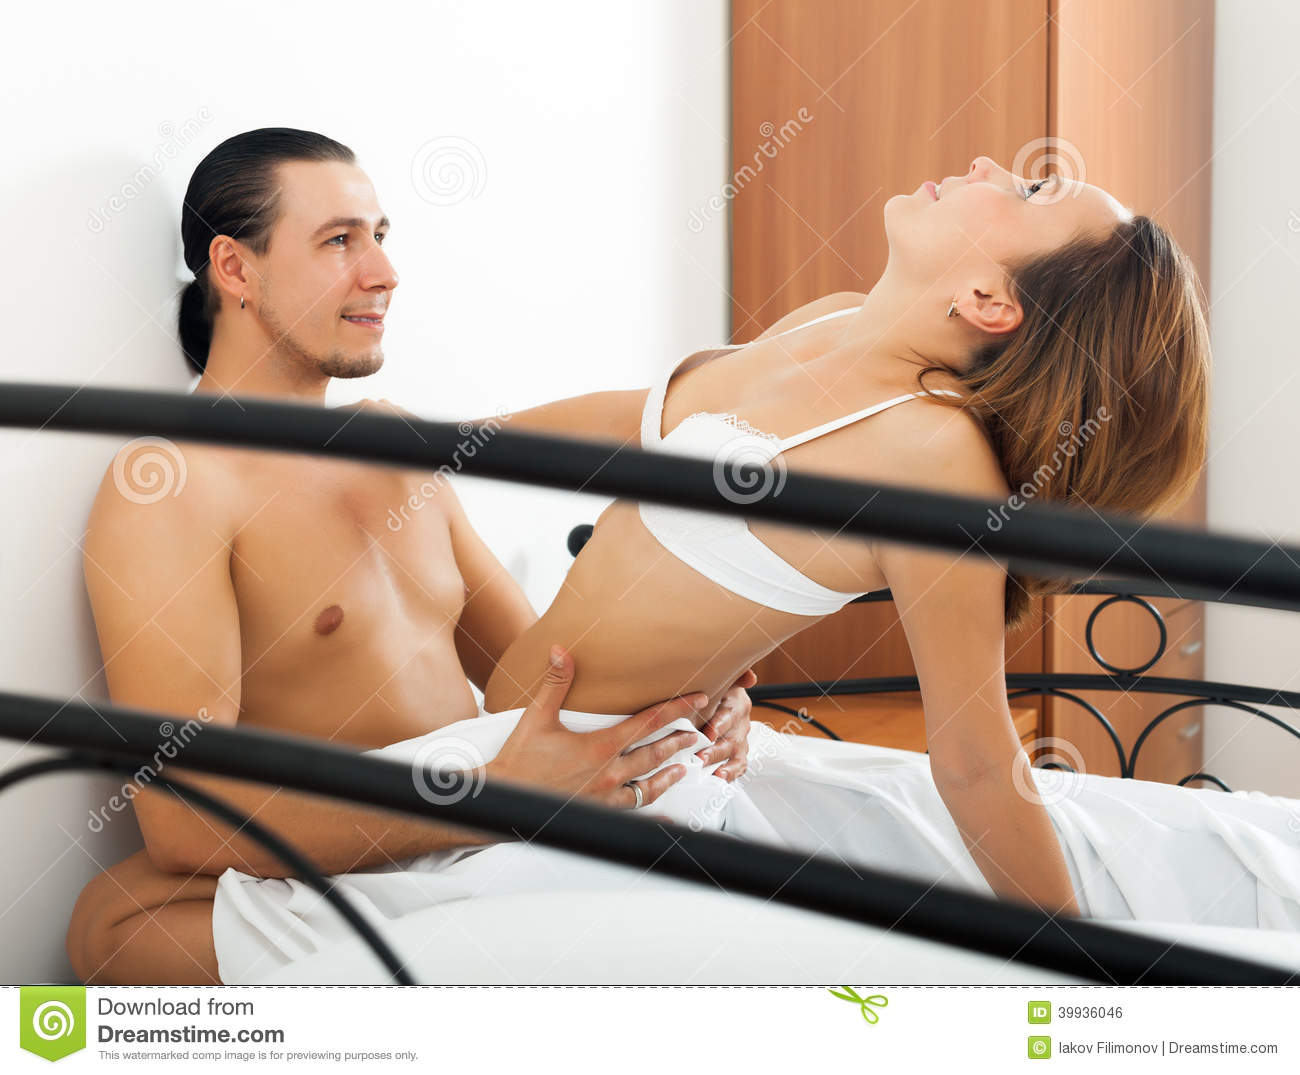 handsome man having sex with woman stock photo - image of home